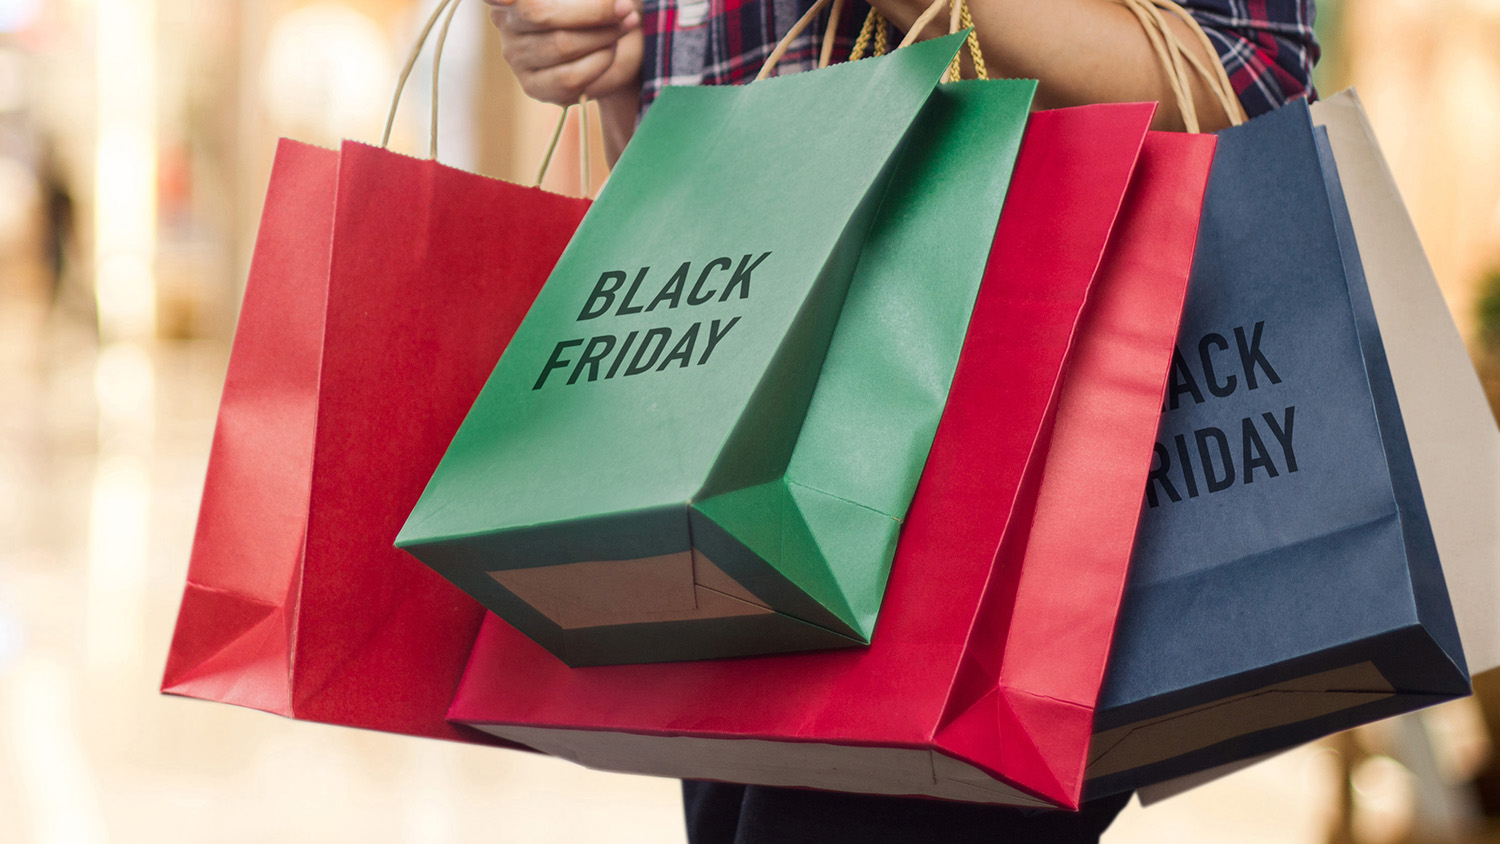 Black Friday 2019 UK: the date, the deals and all the details | What